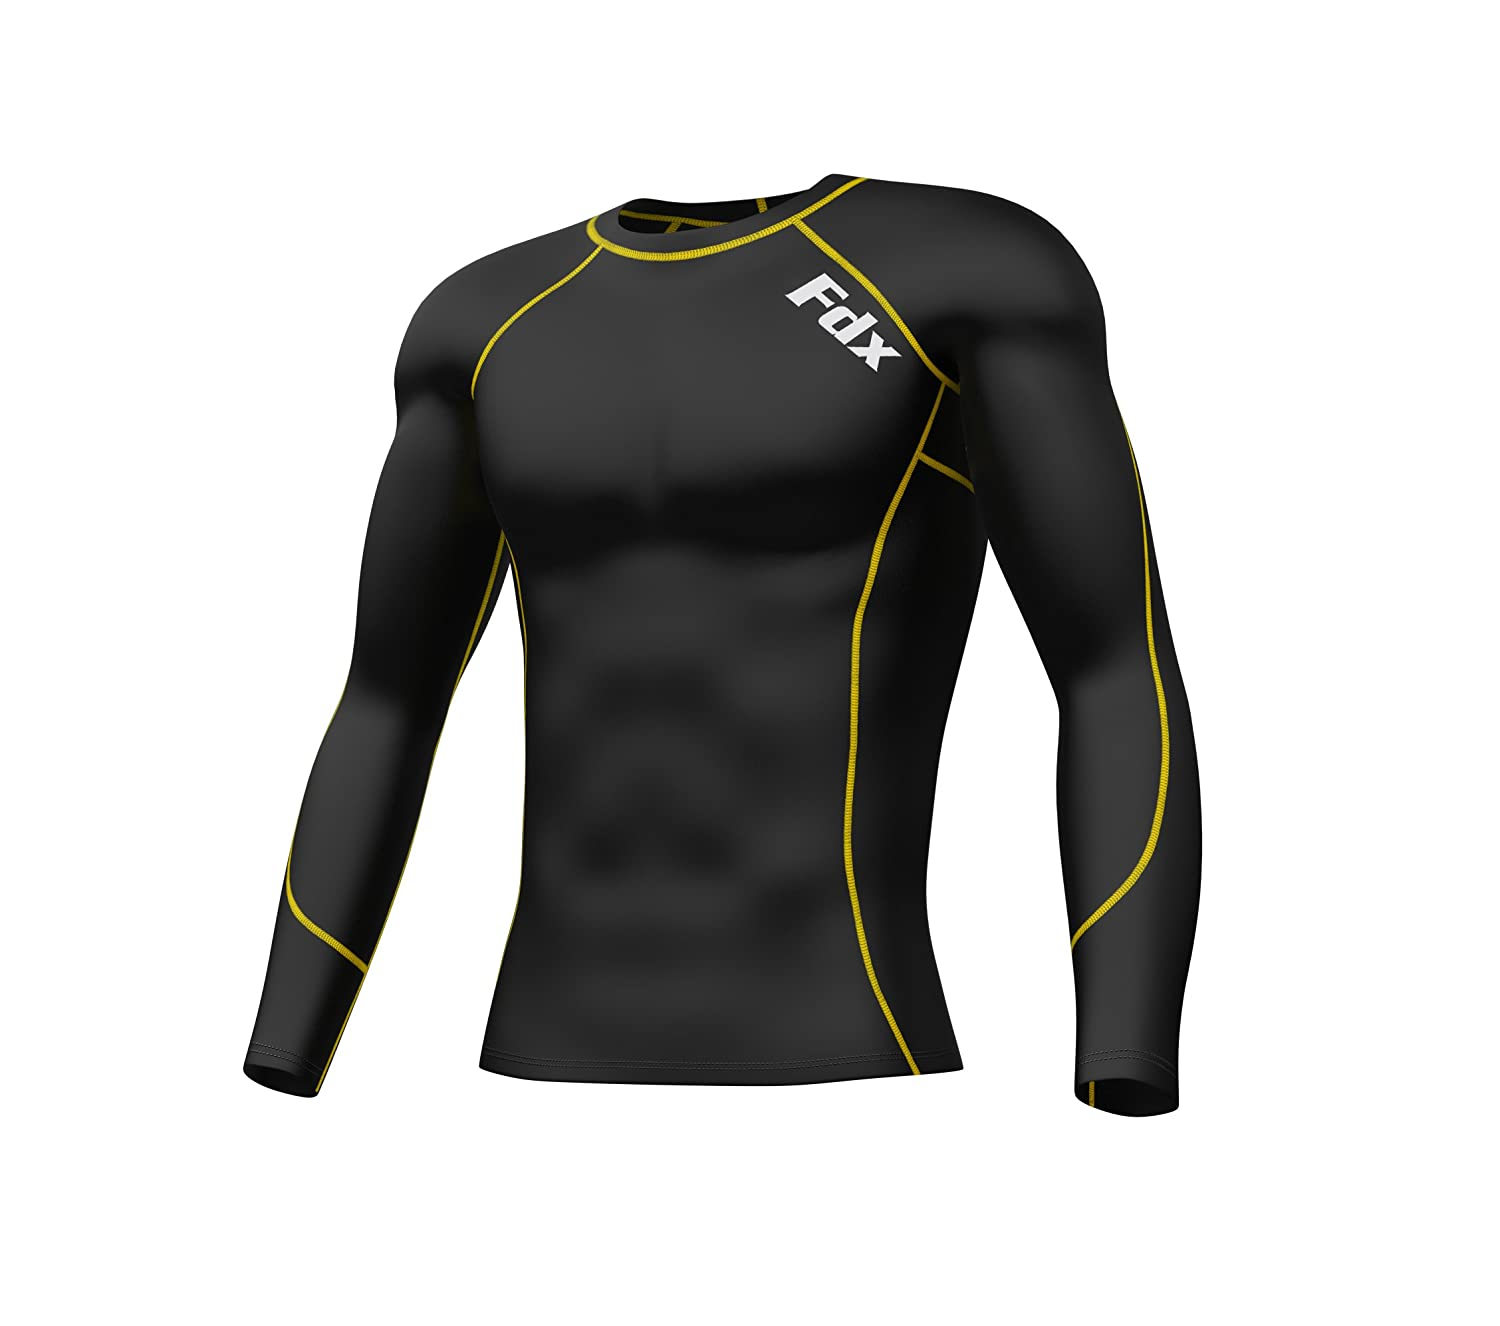 d11a8f4ce6 FDX Mens & Boys Compression Armour Base Layer Top Long Sleeve Thermal Multi  Sport Shirt: Amazon.co.uk: Sports & Outdoors